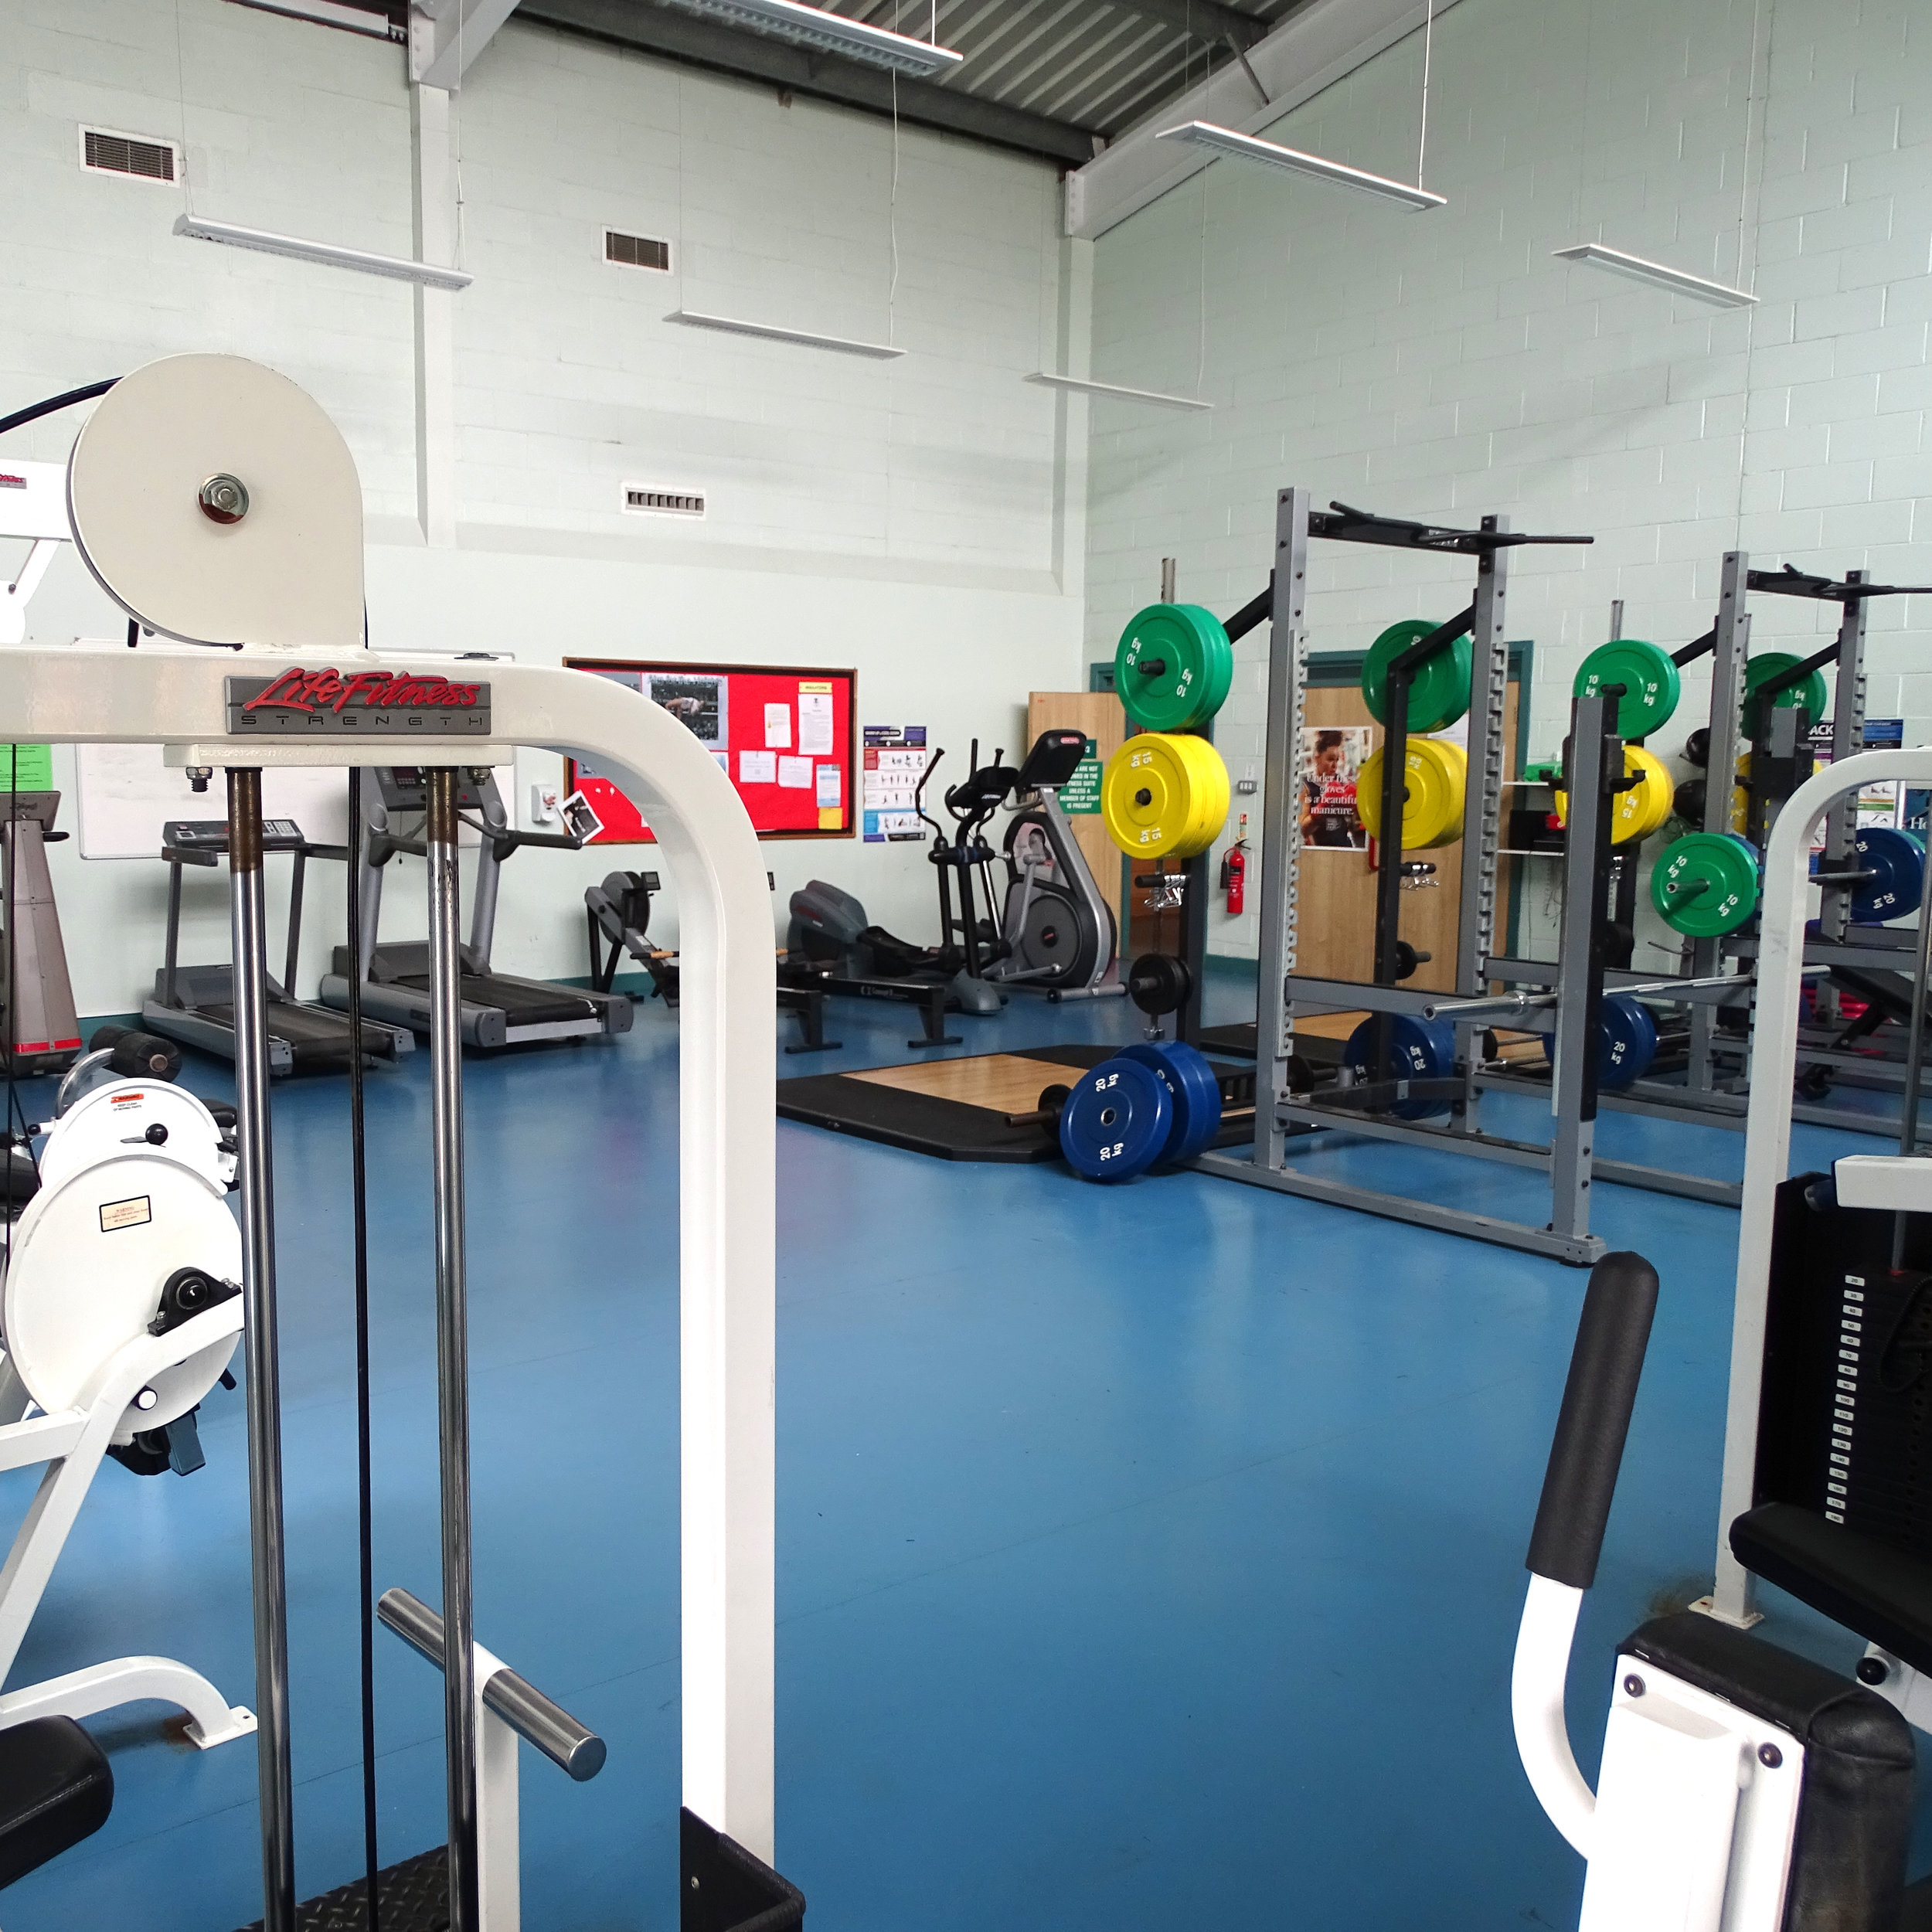 Hymers-Website-Facilities-Fitness Suite.jpg